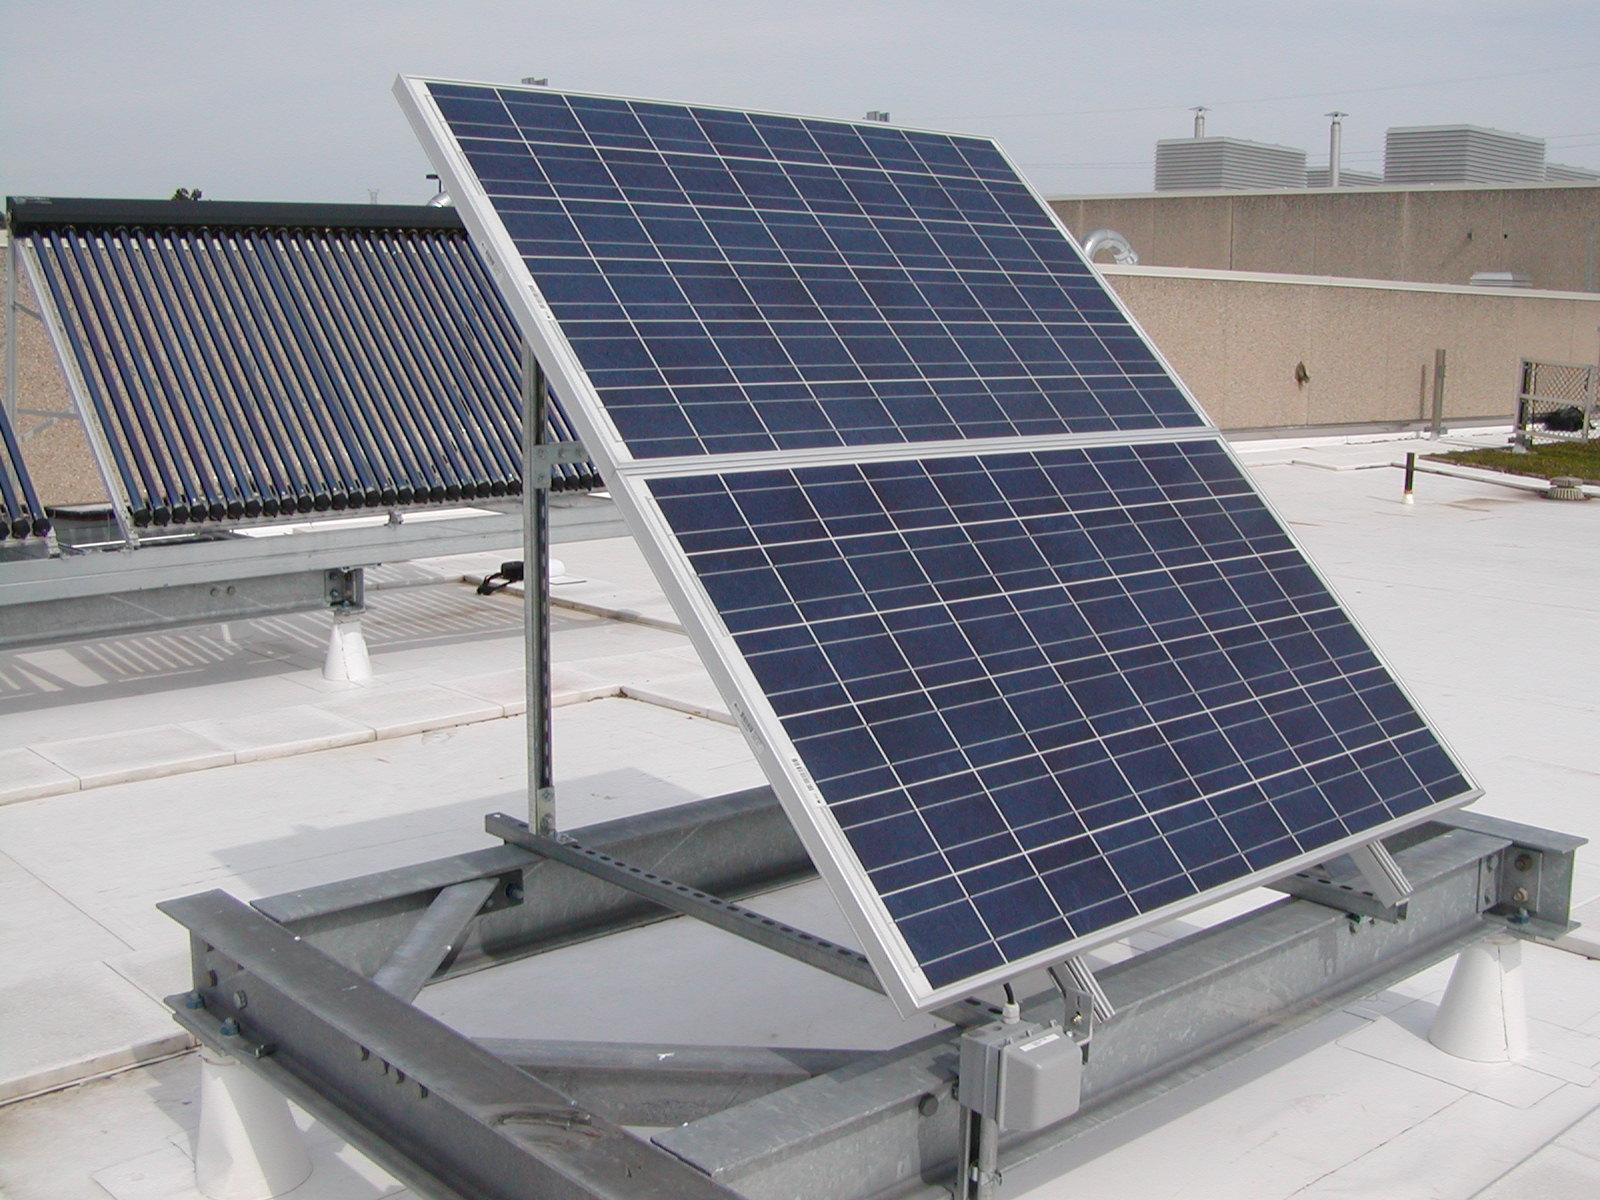 Solar photovoltaic and hot water panels for classroom use